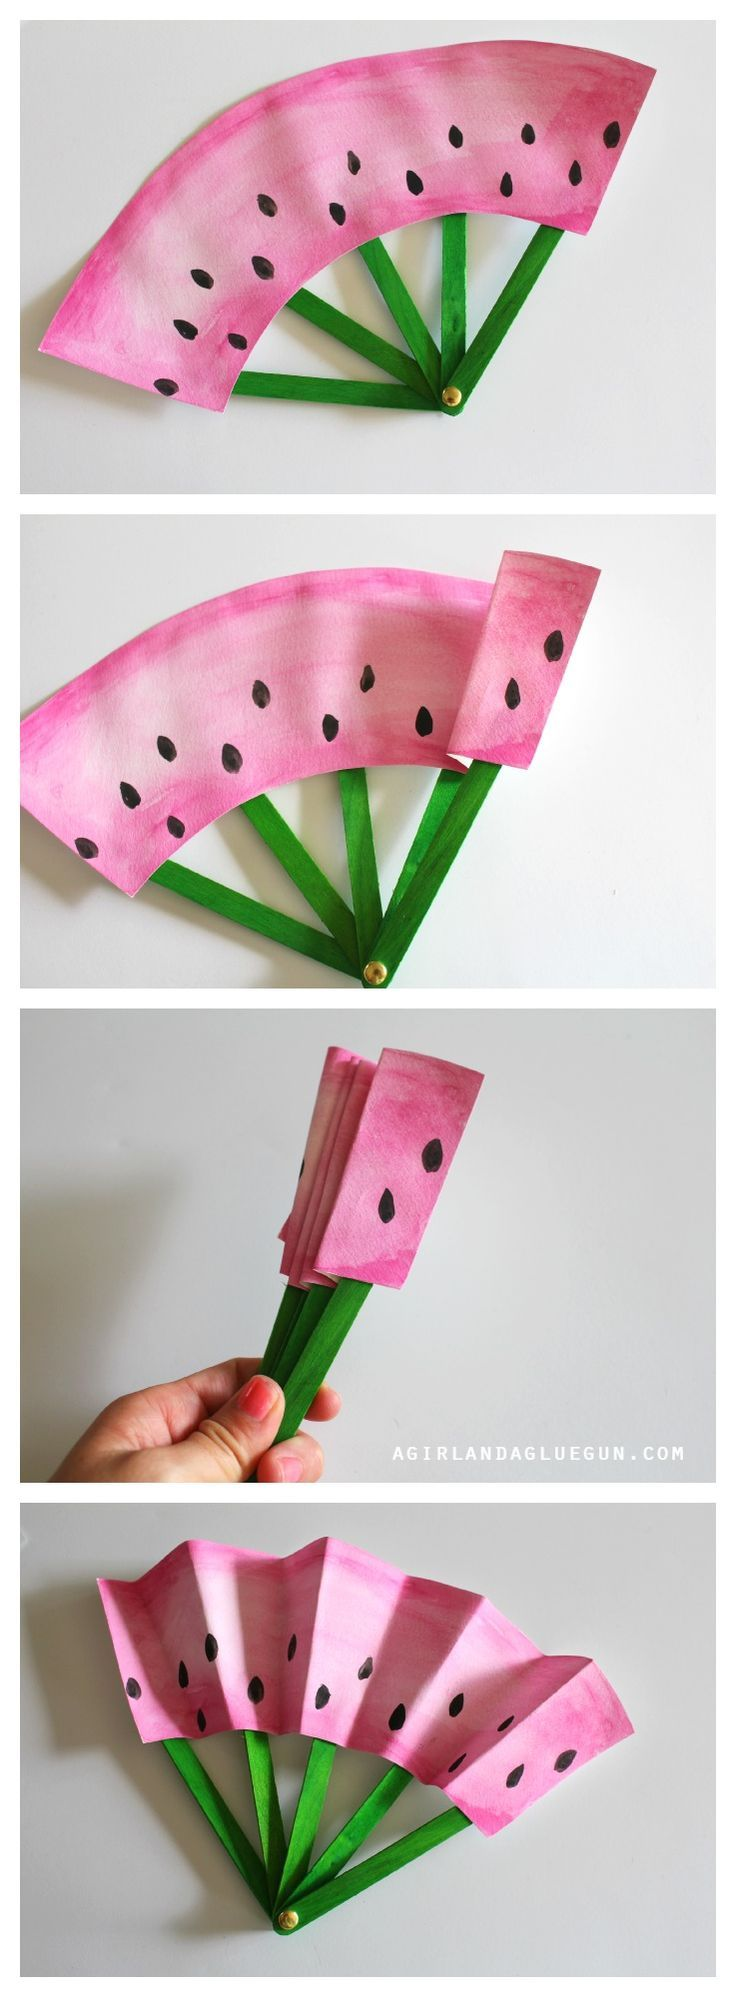 Uncategorized How To Ideas For Kids best 25 kid crafts ideas on pinterest easy kids fun for and kids